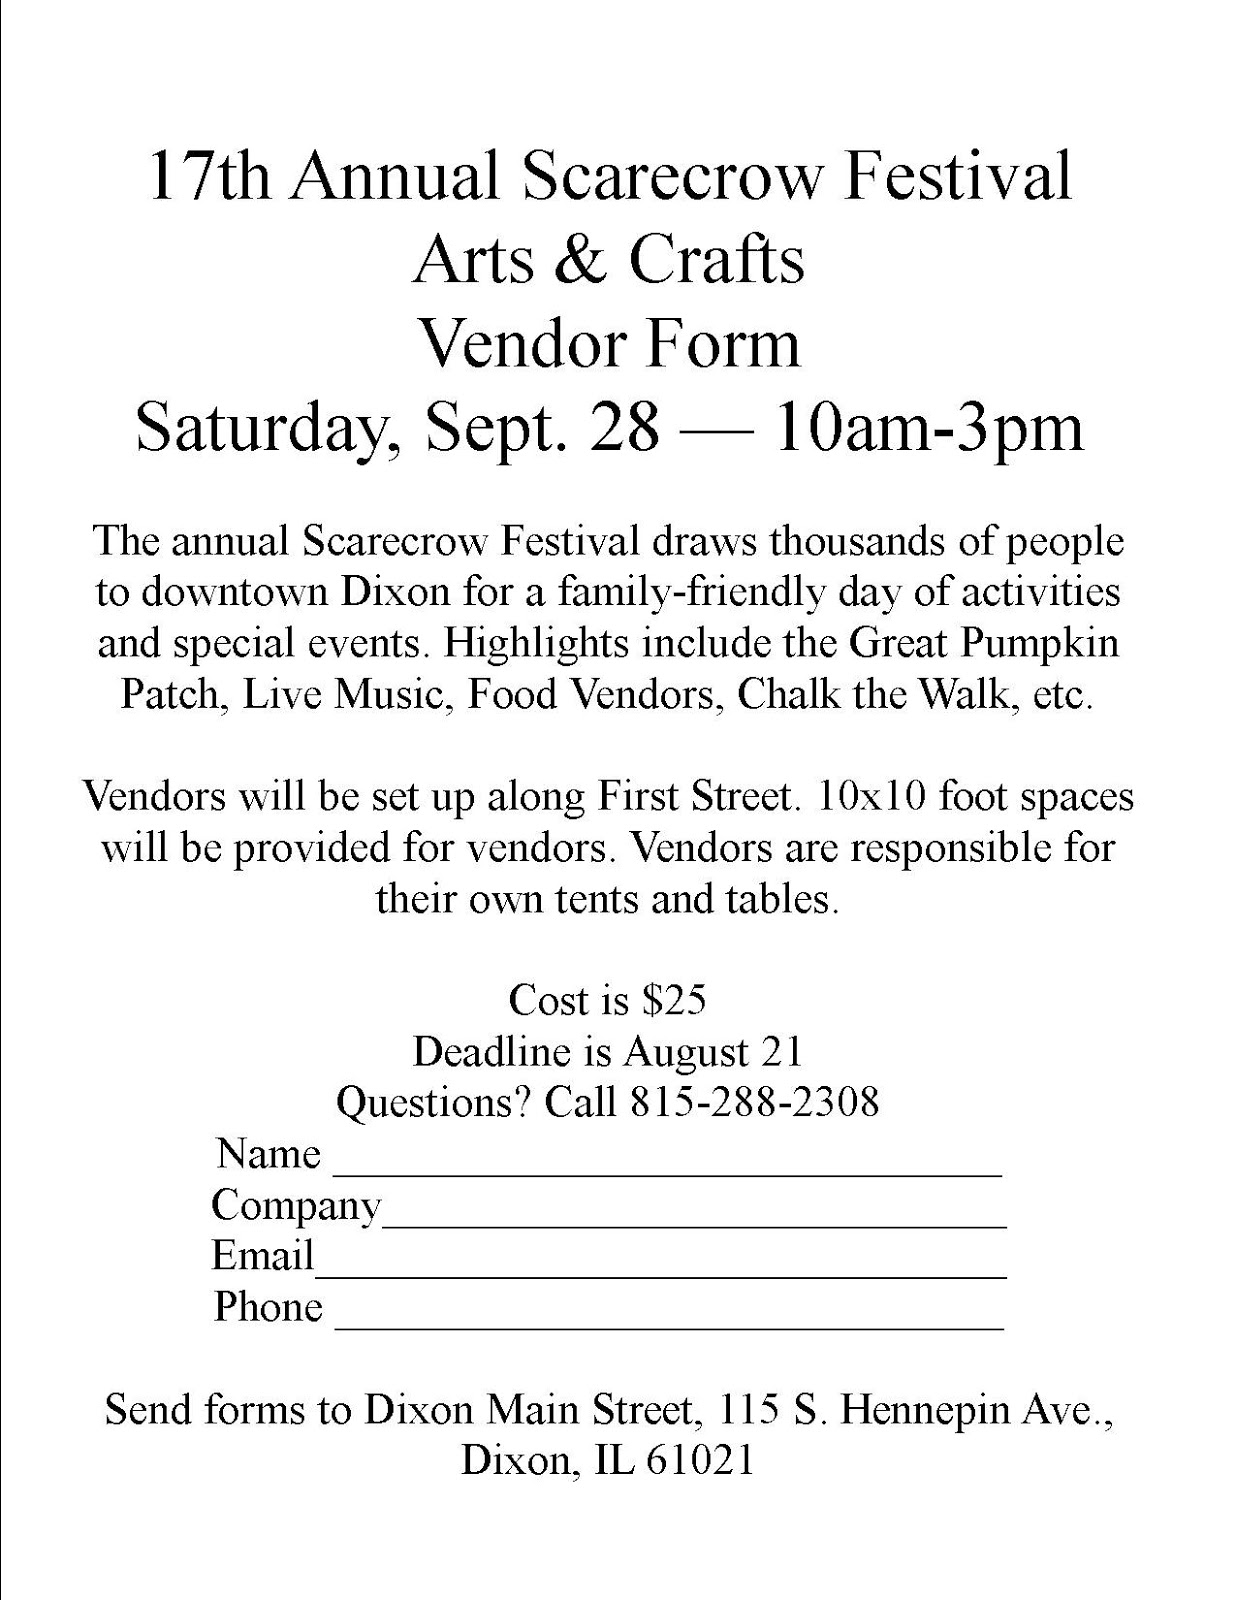 Dixon Main Street Scarecrow Festival Vendor Application – Vendor Form Template